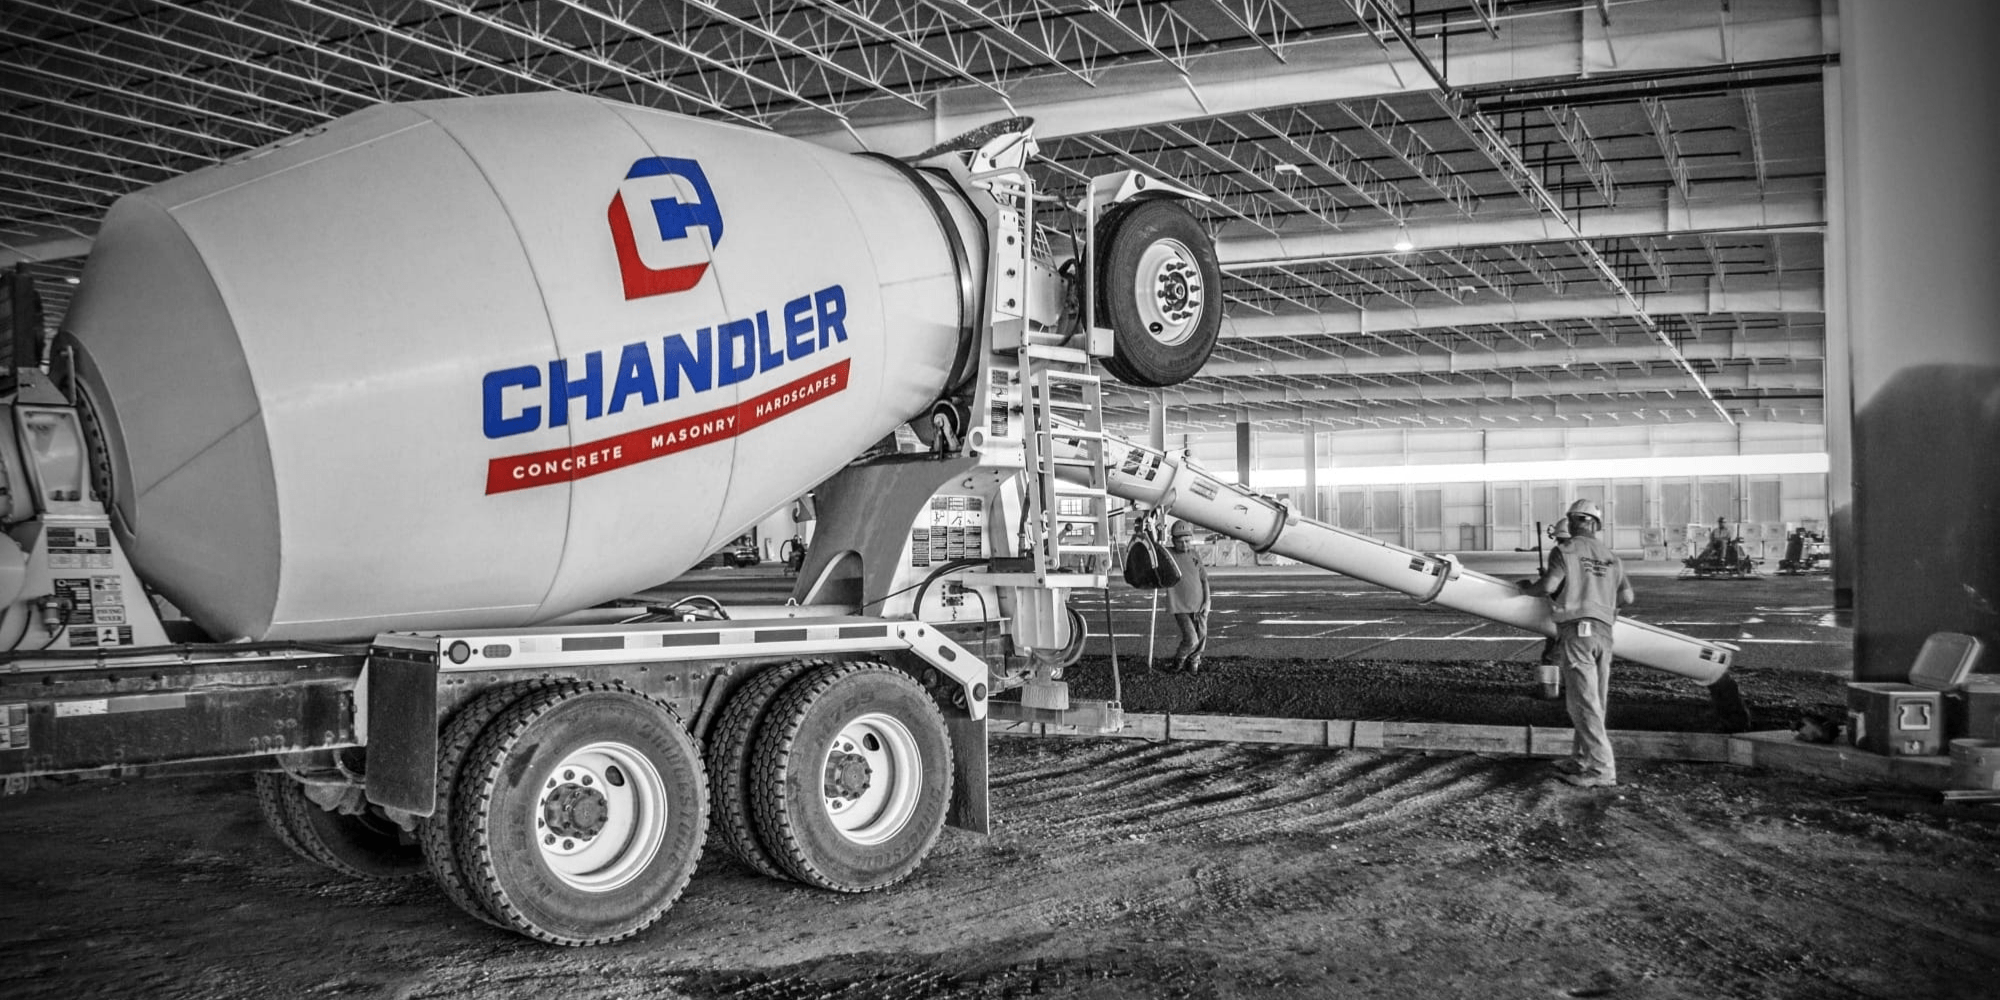 Illustration: Case Study: How Chandler Concrete Uses PSPDFKit to Optimize and Digitize Its Employees' Document Workflow in the Field